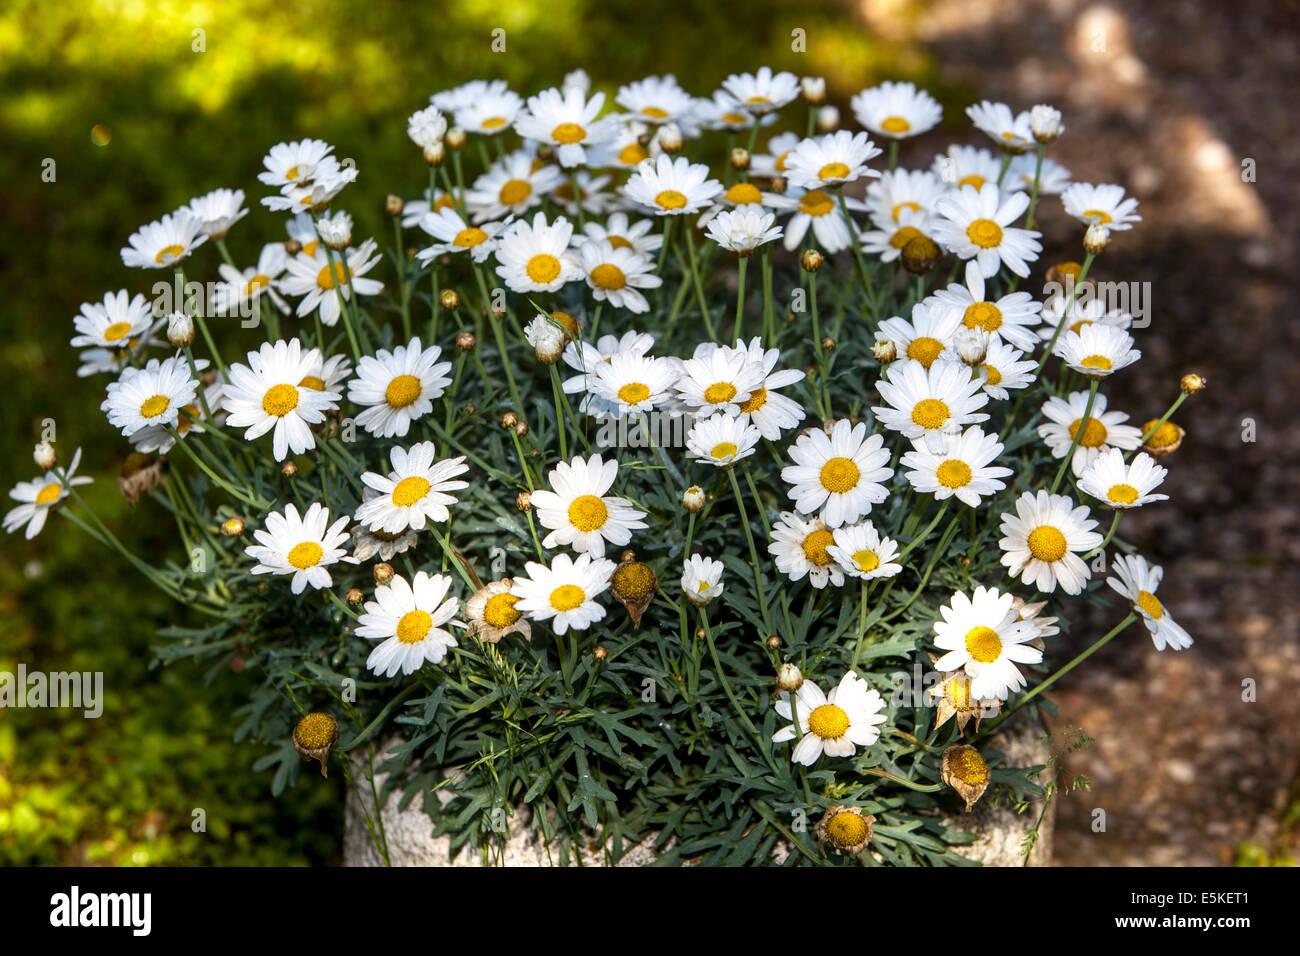 daisies in container - Stock Image